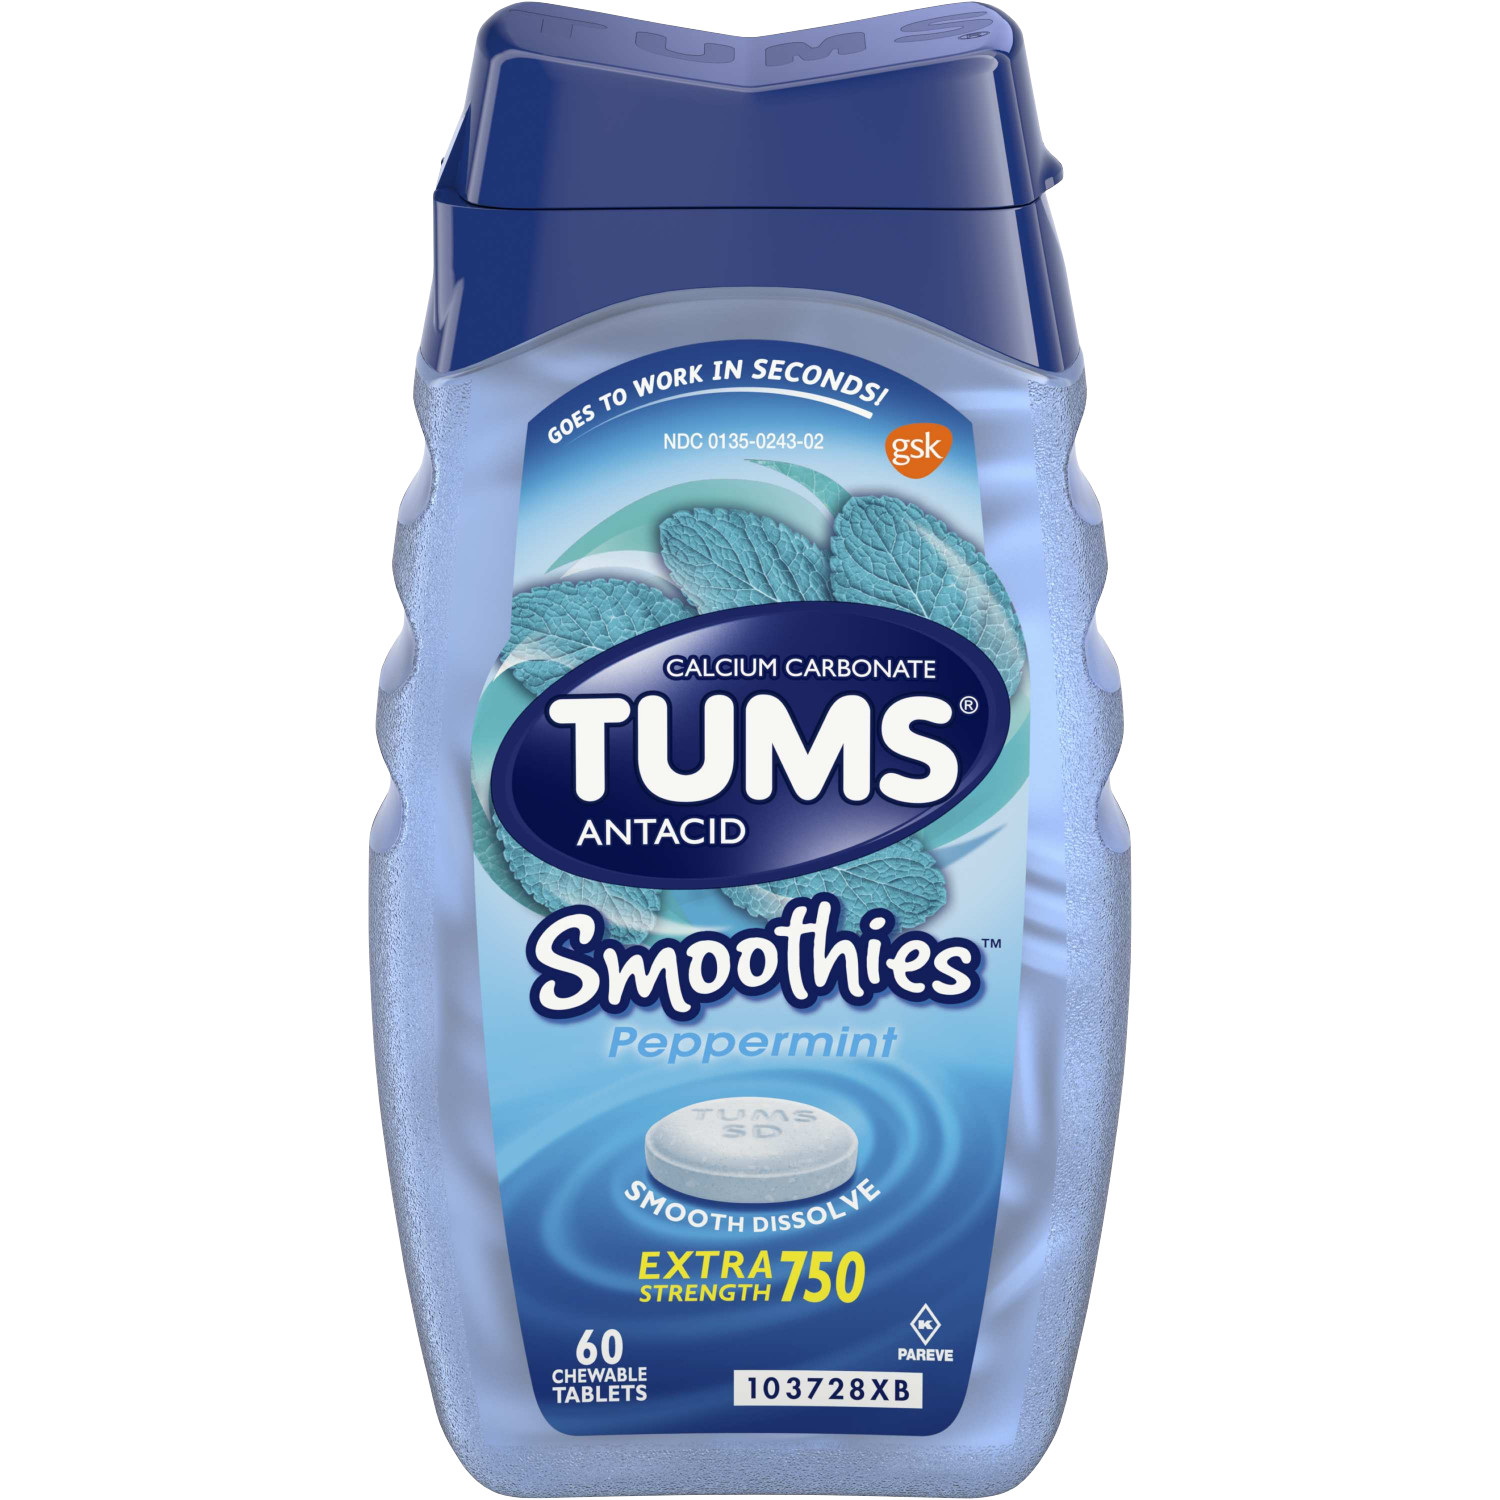 TUMS Antacid Chewable Tablets, Smoothies Peppermint for Heartburn Relief, 60 count